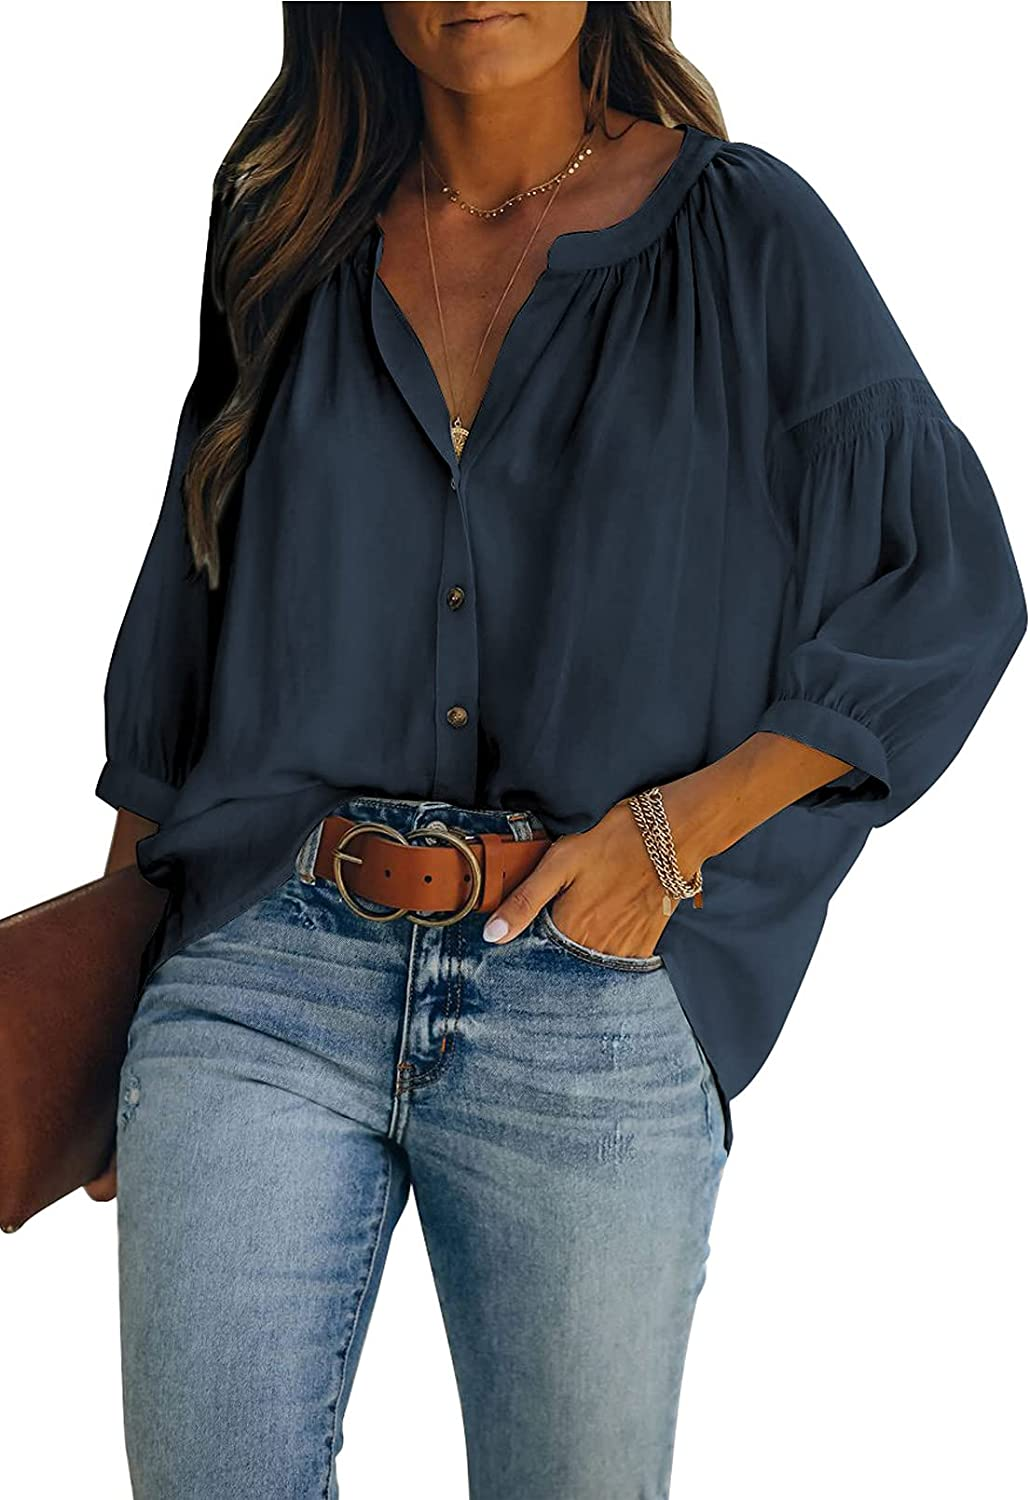 LUOLON Women V-Neck Button Down Blouses 3/4 Sleeve Tunics Casual T-Shirt Loose Fit Tops